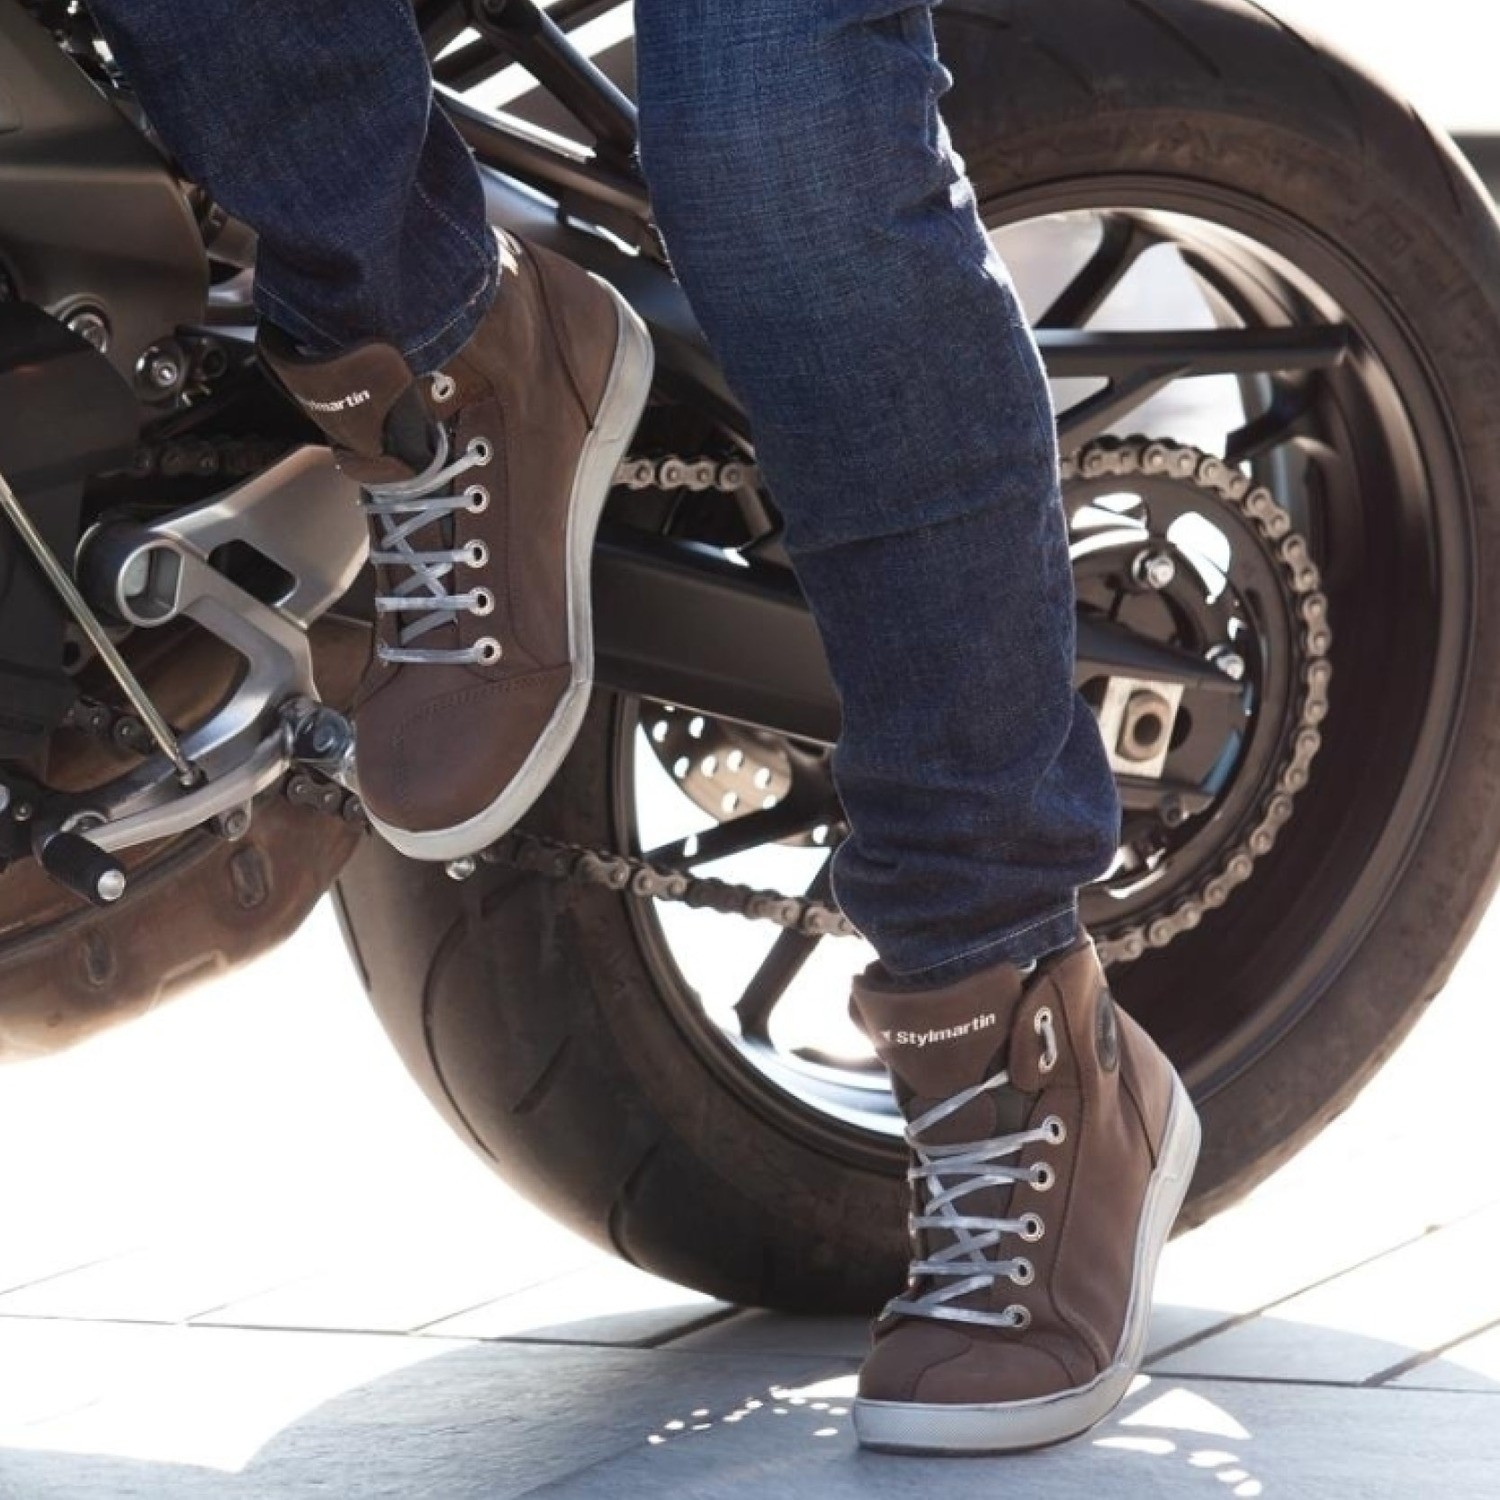 Marshall Taupe Motorcycle Sneakers by Stylmartin